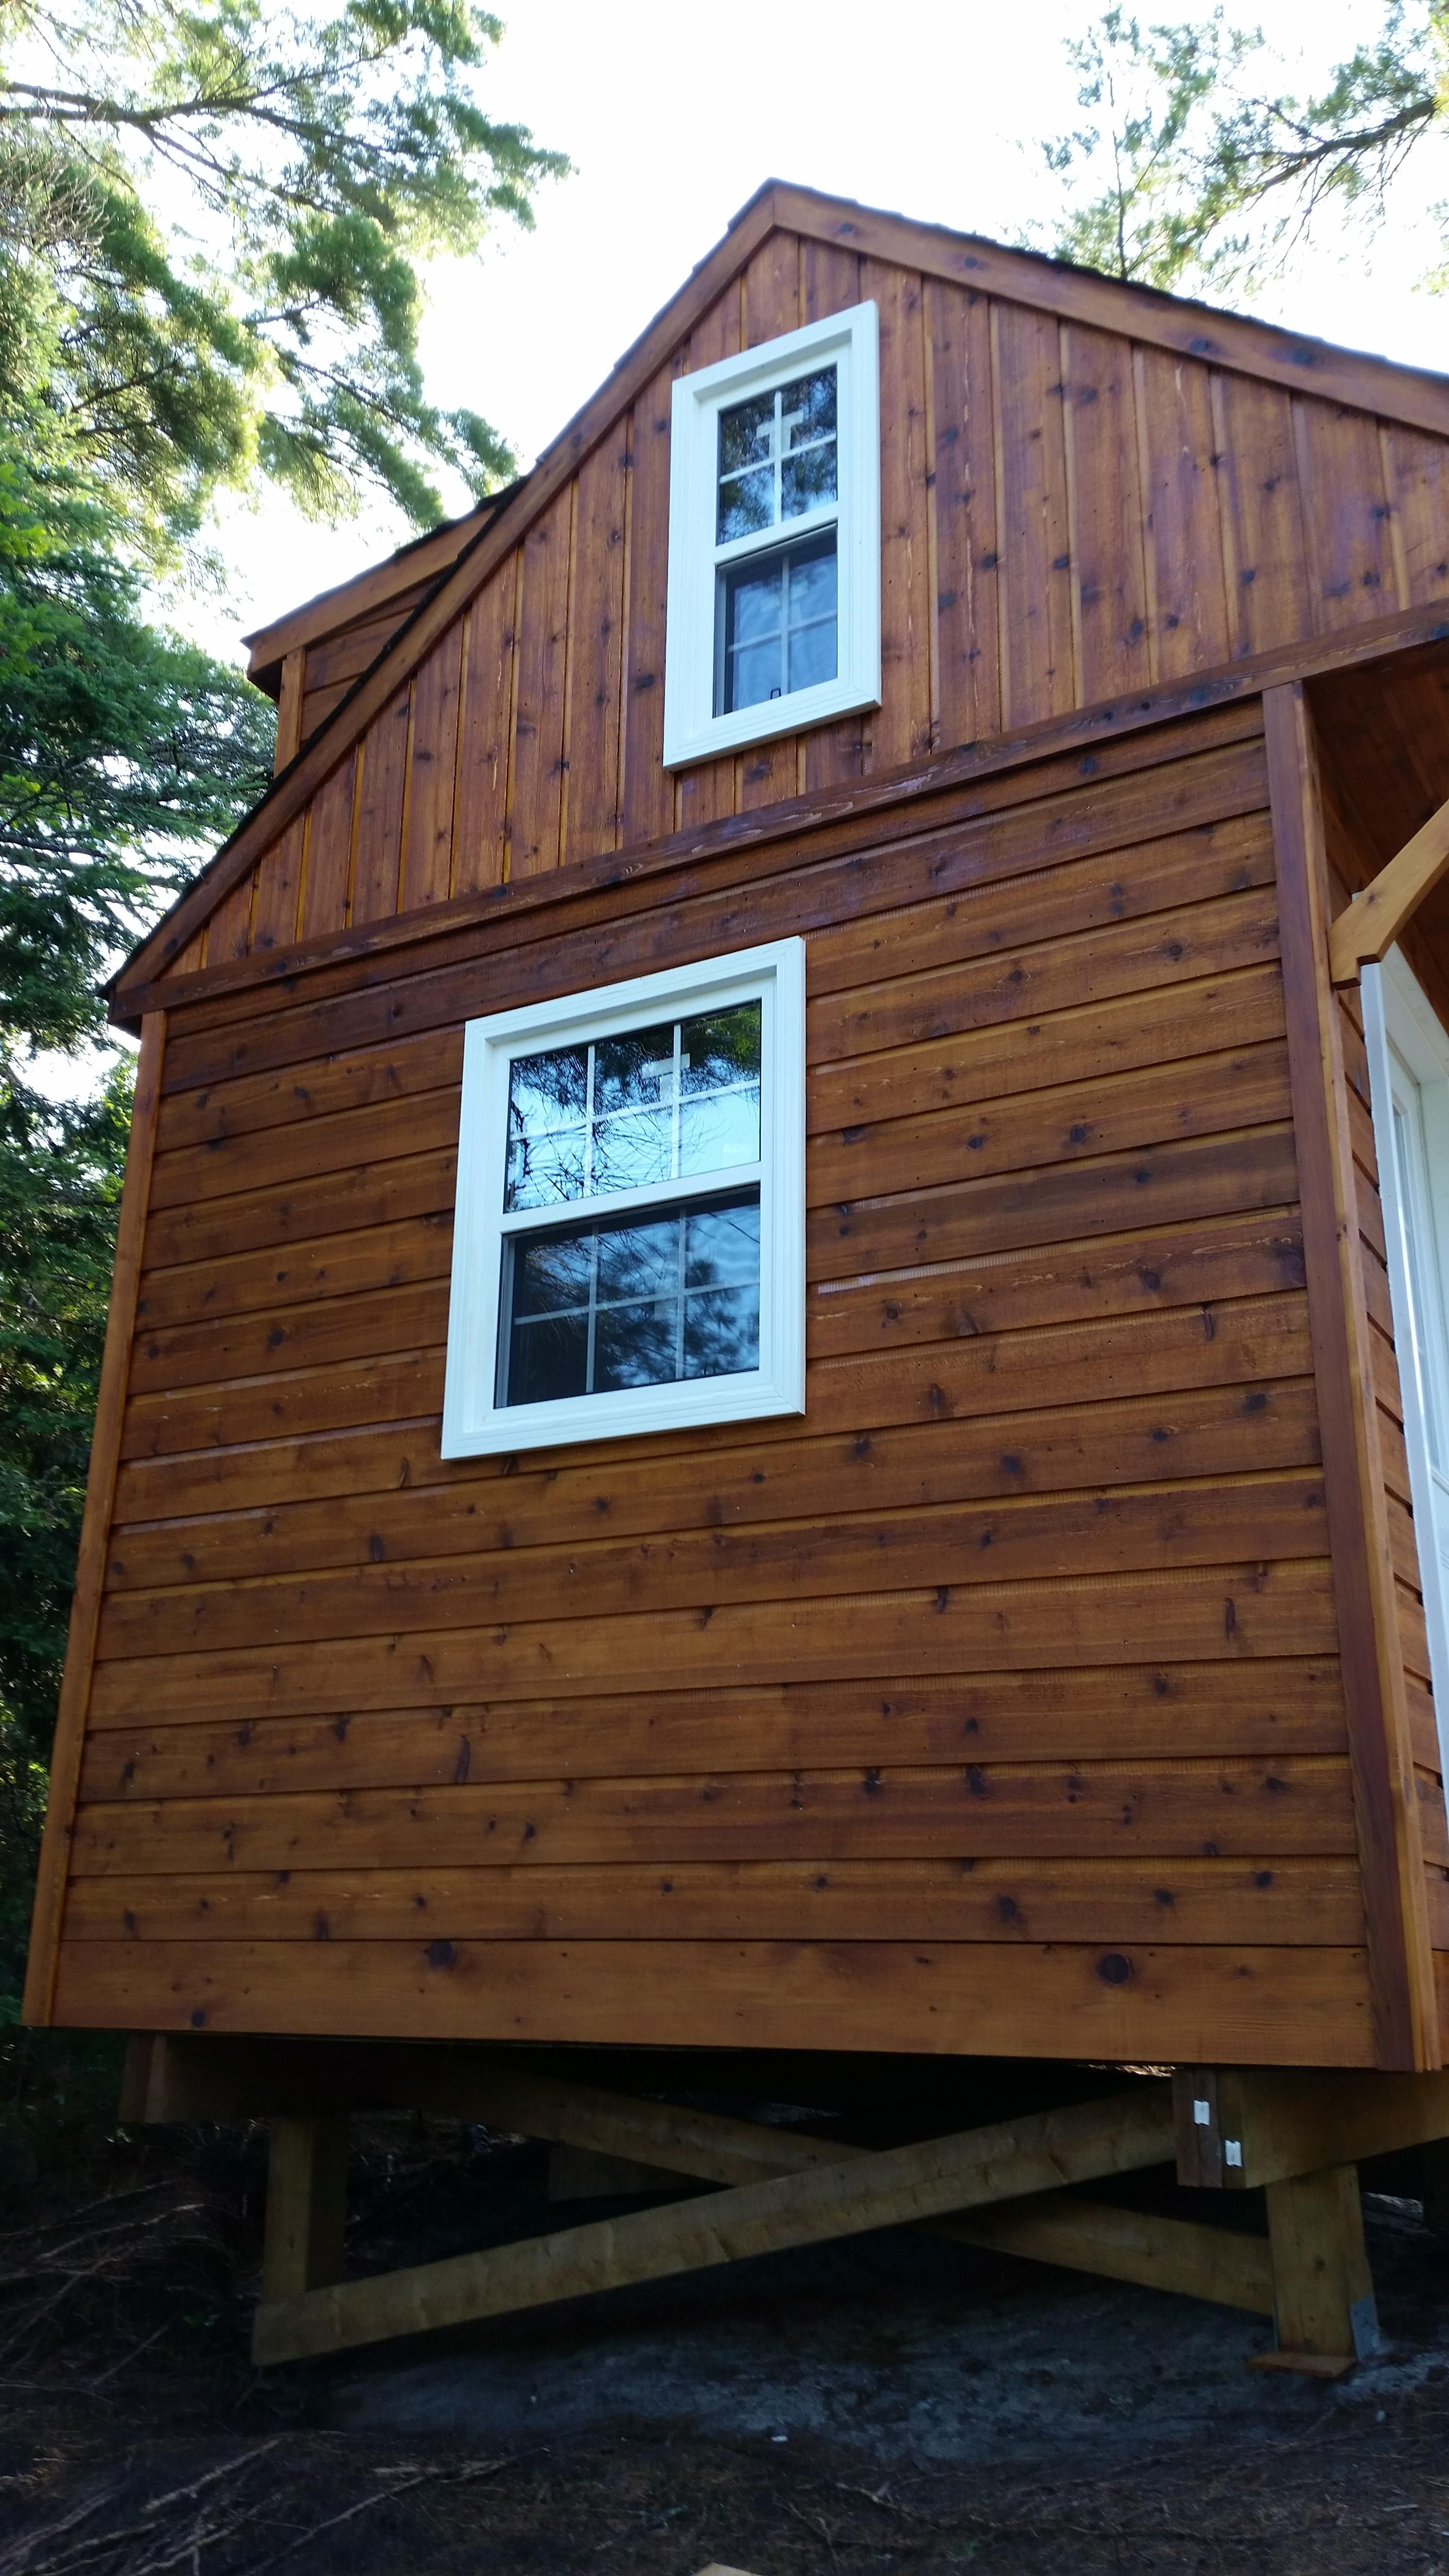 This Sturdy Structure Has A Hidden Gem In It Overhang Lots Of Storage Space And No Building Permit Needed Building Permits House Styles Temporary Structures